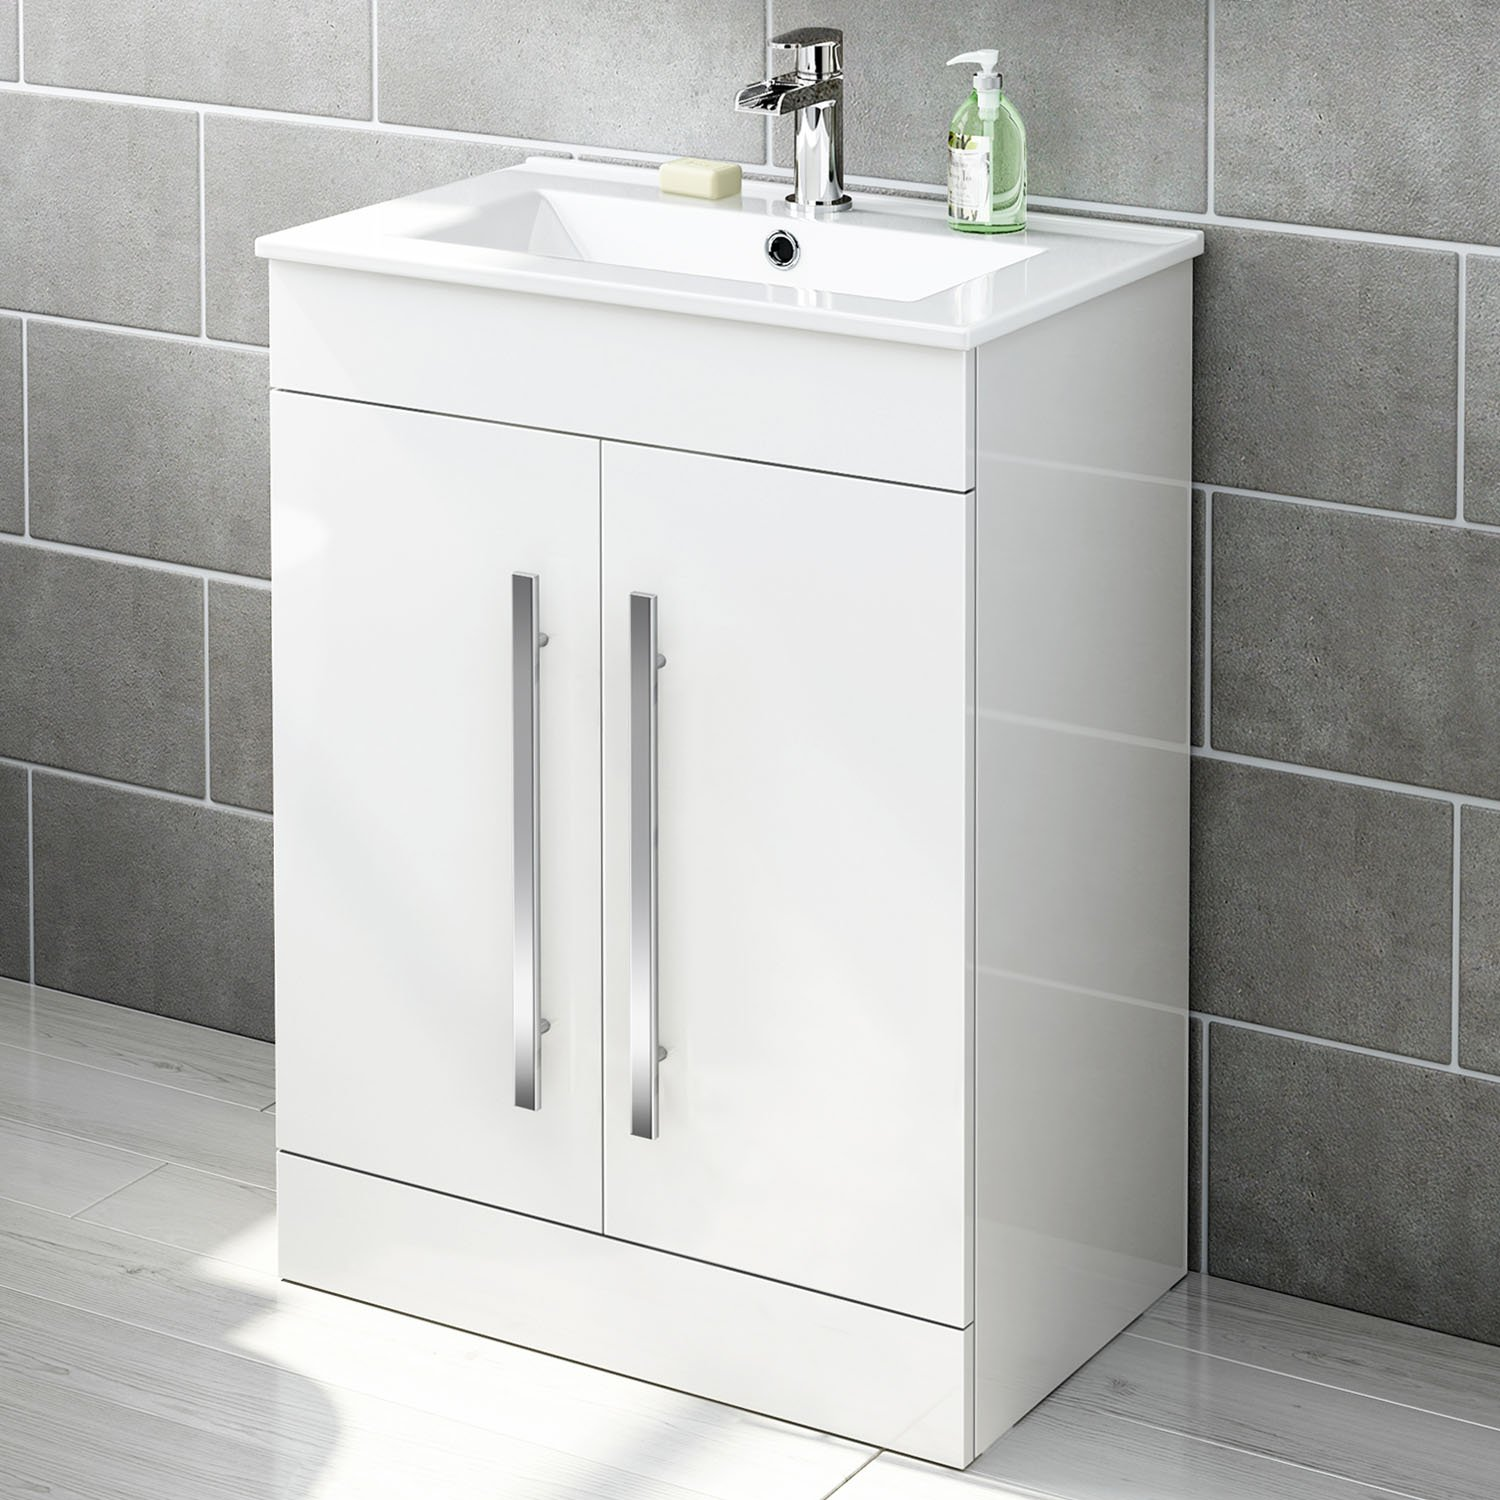 600 mm White Gloss Vanity Sink Unit.